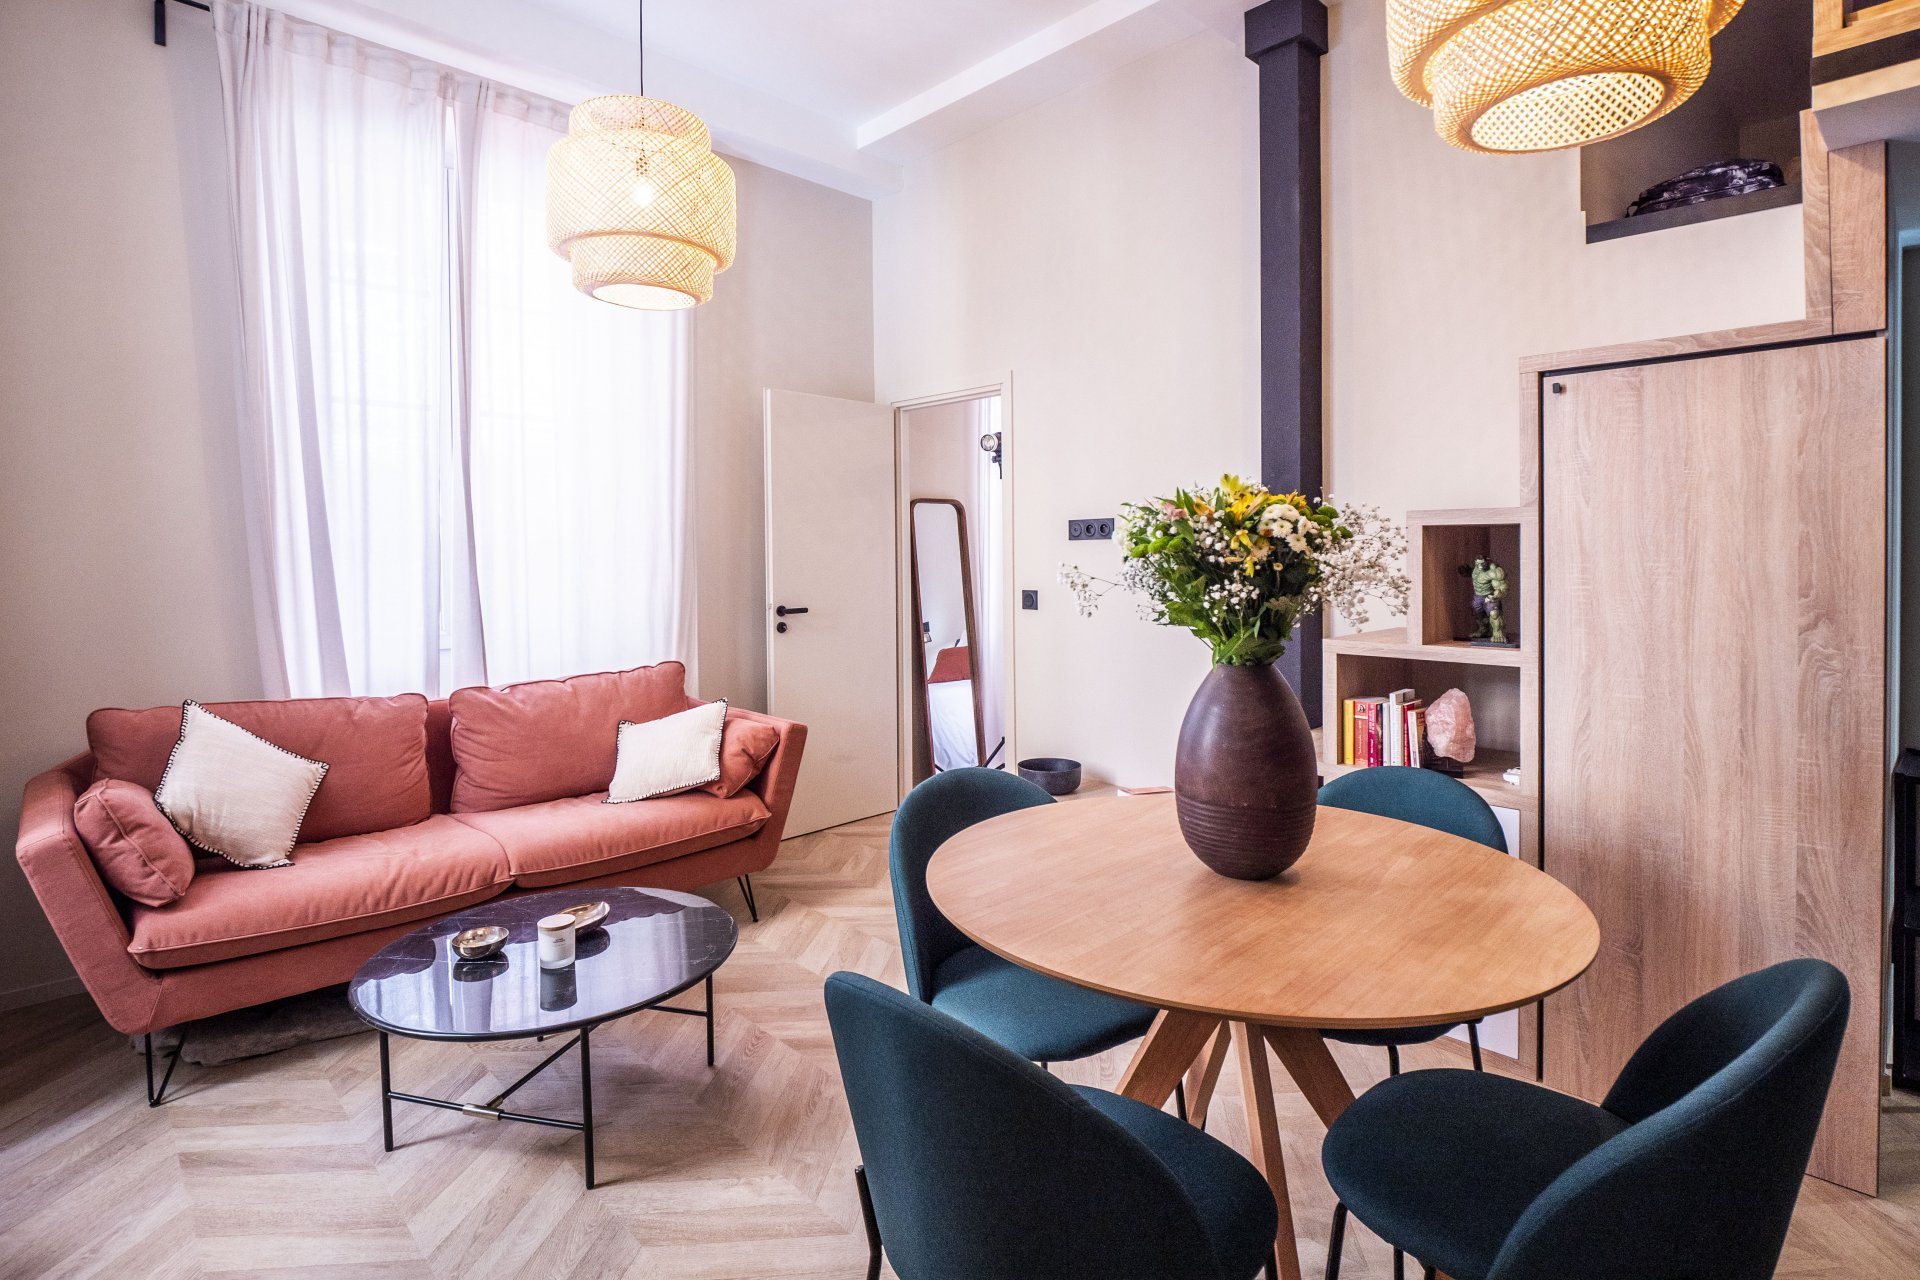 2 BEDROOMS IN OLD CITY